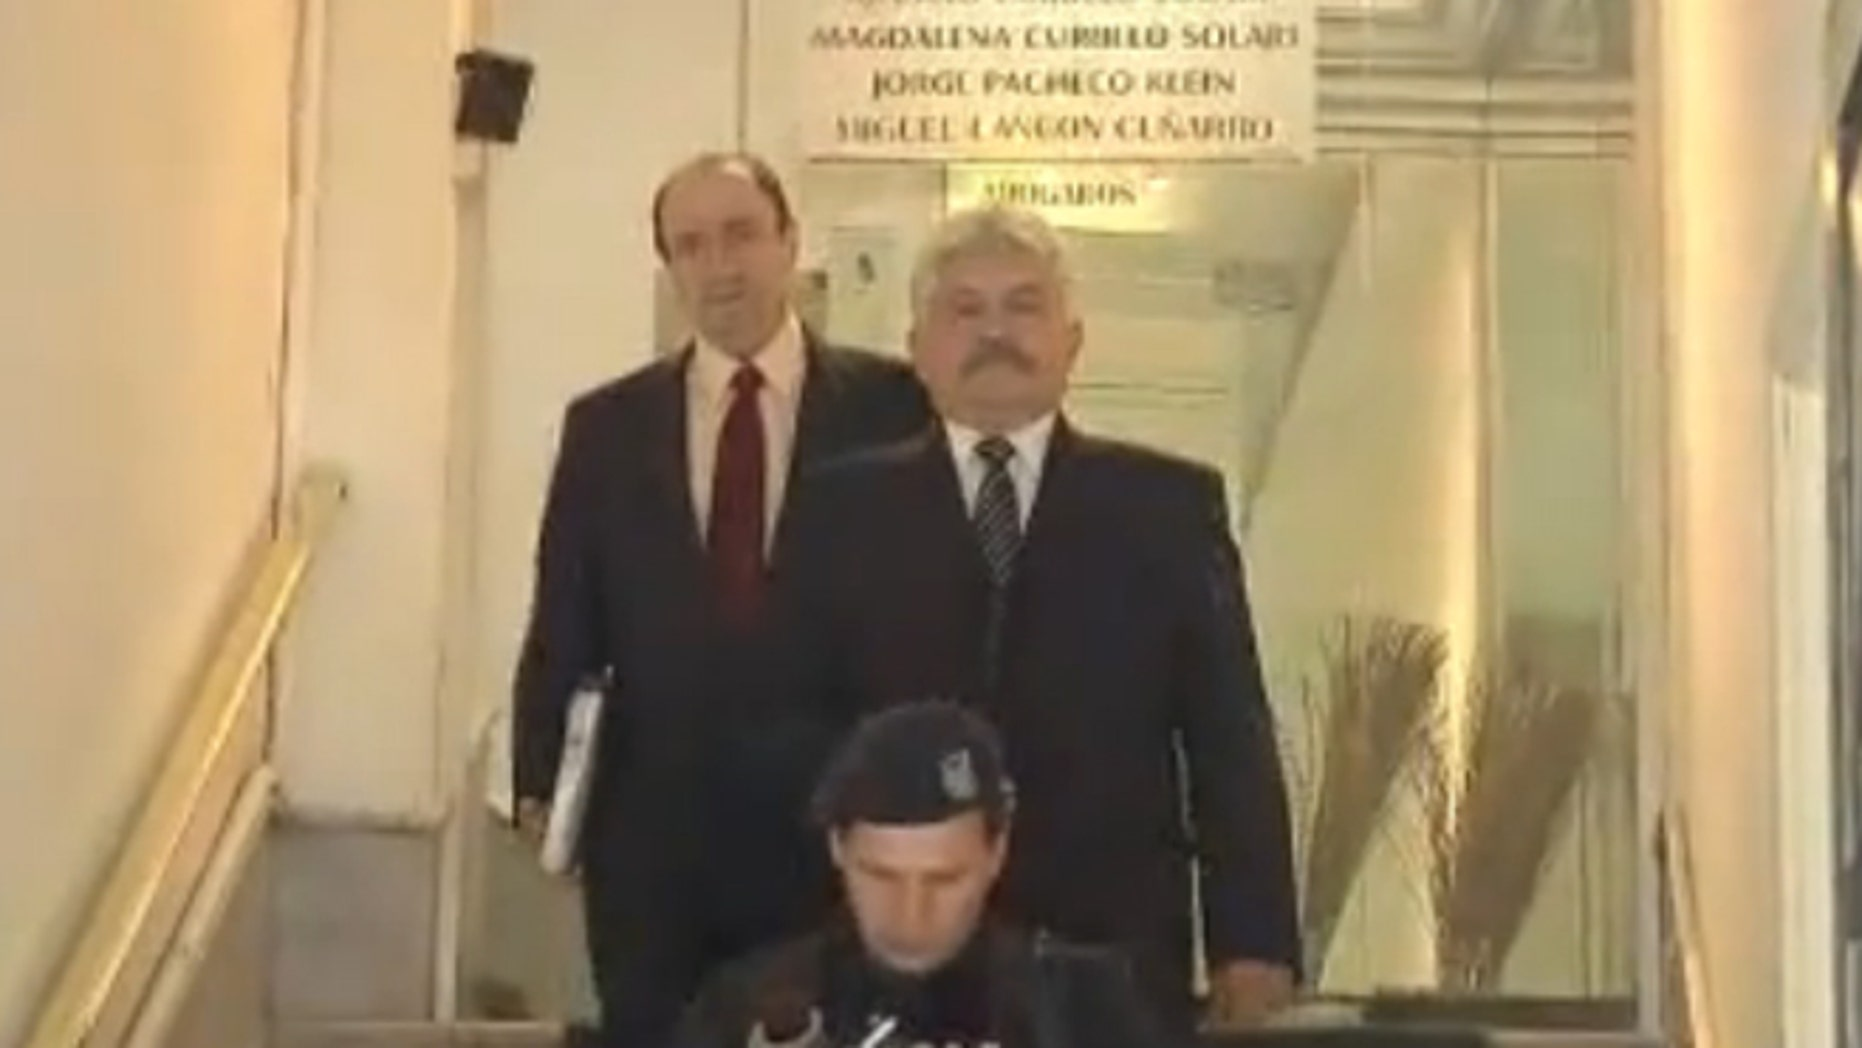 Uruguayan Gen. Miguel Dalmao was sentenced to 28 years in prison in connection to the killing of a professor during the country's dictatorship-era. (YouTube)